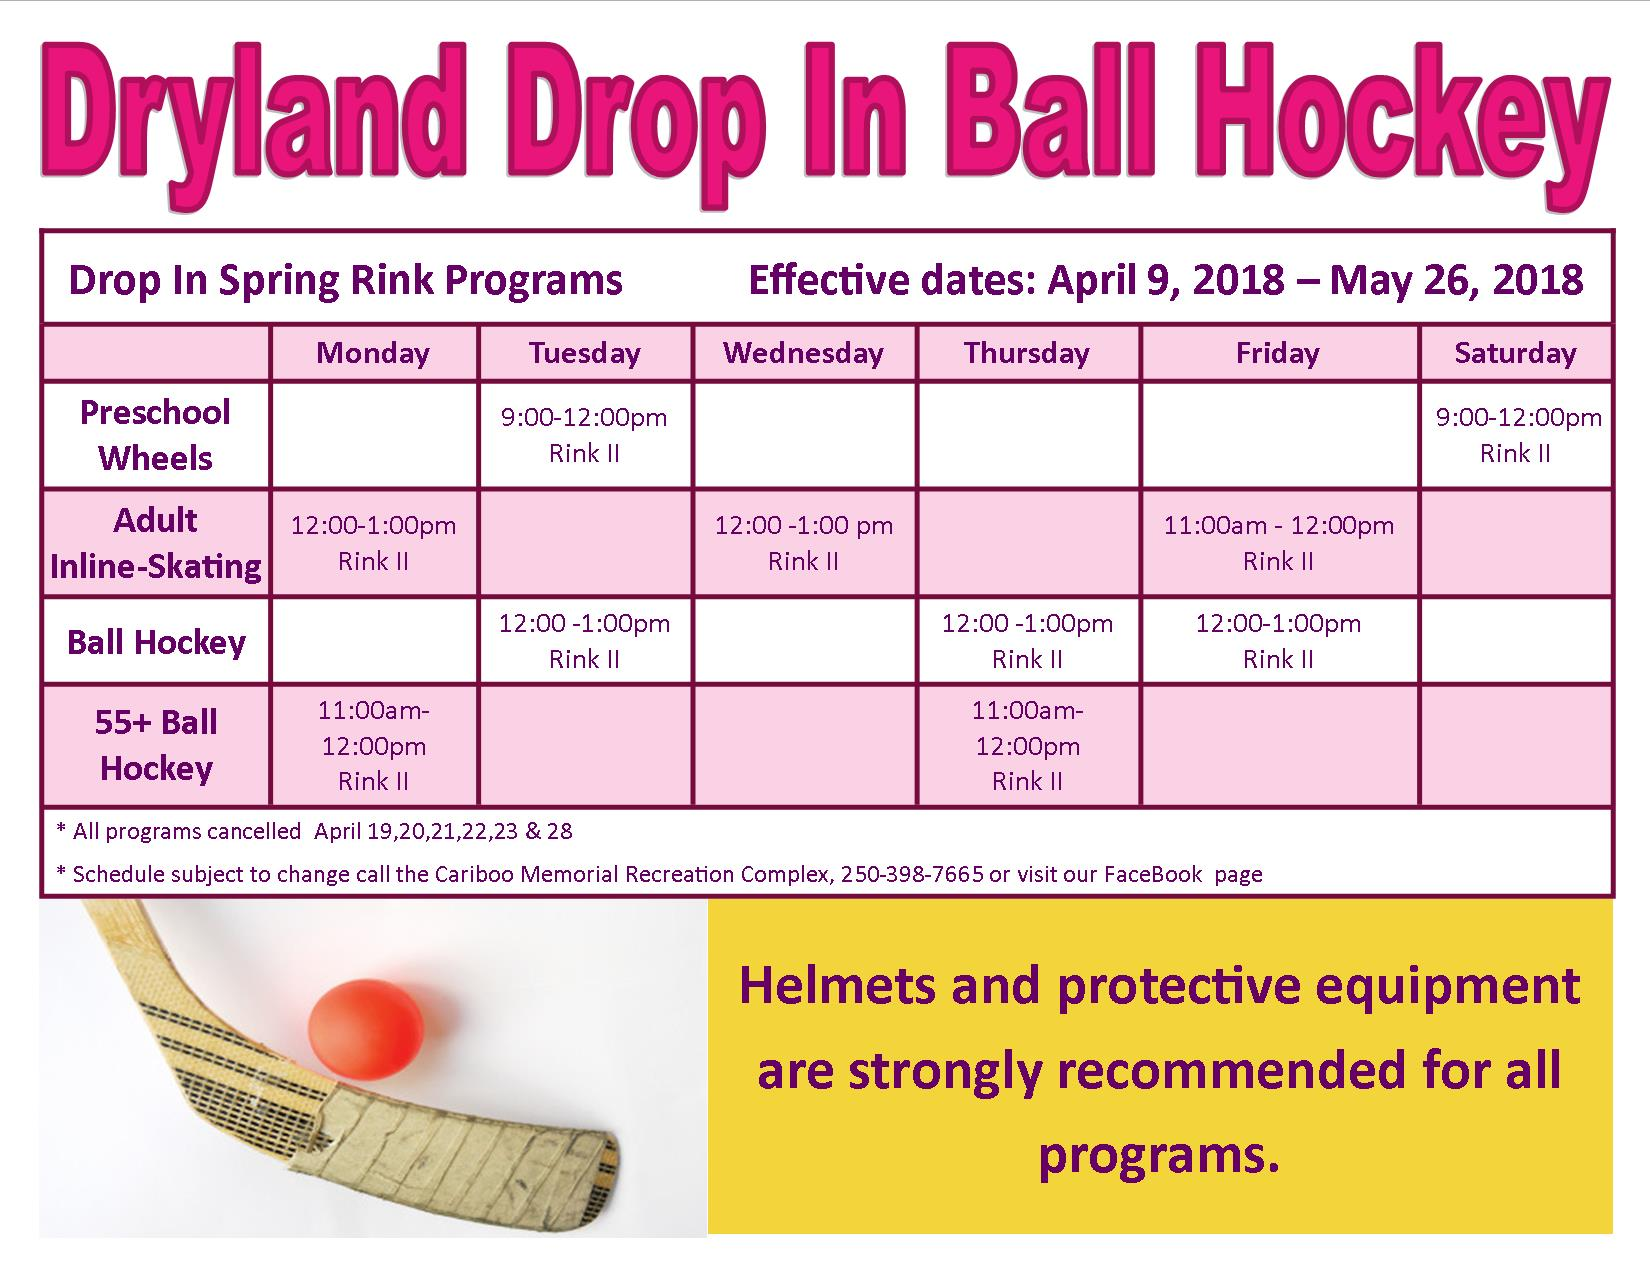 dryland drop in ball hockey